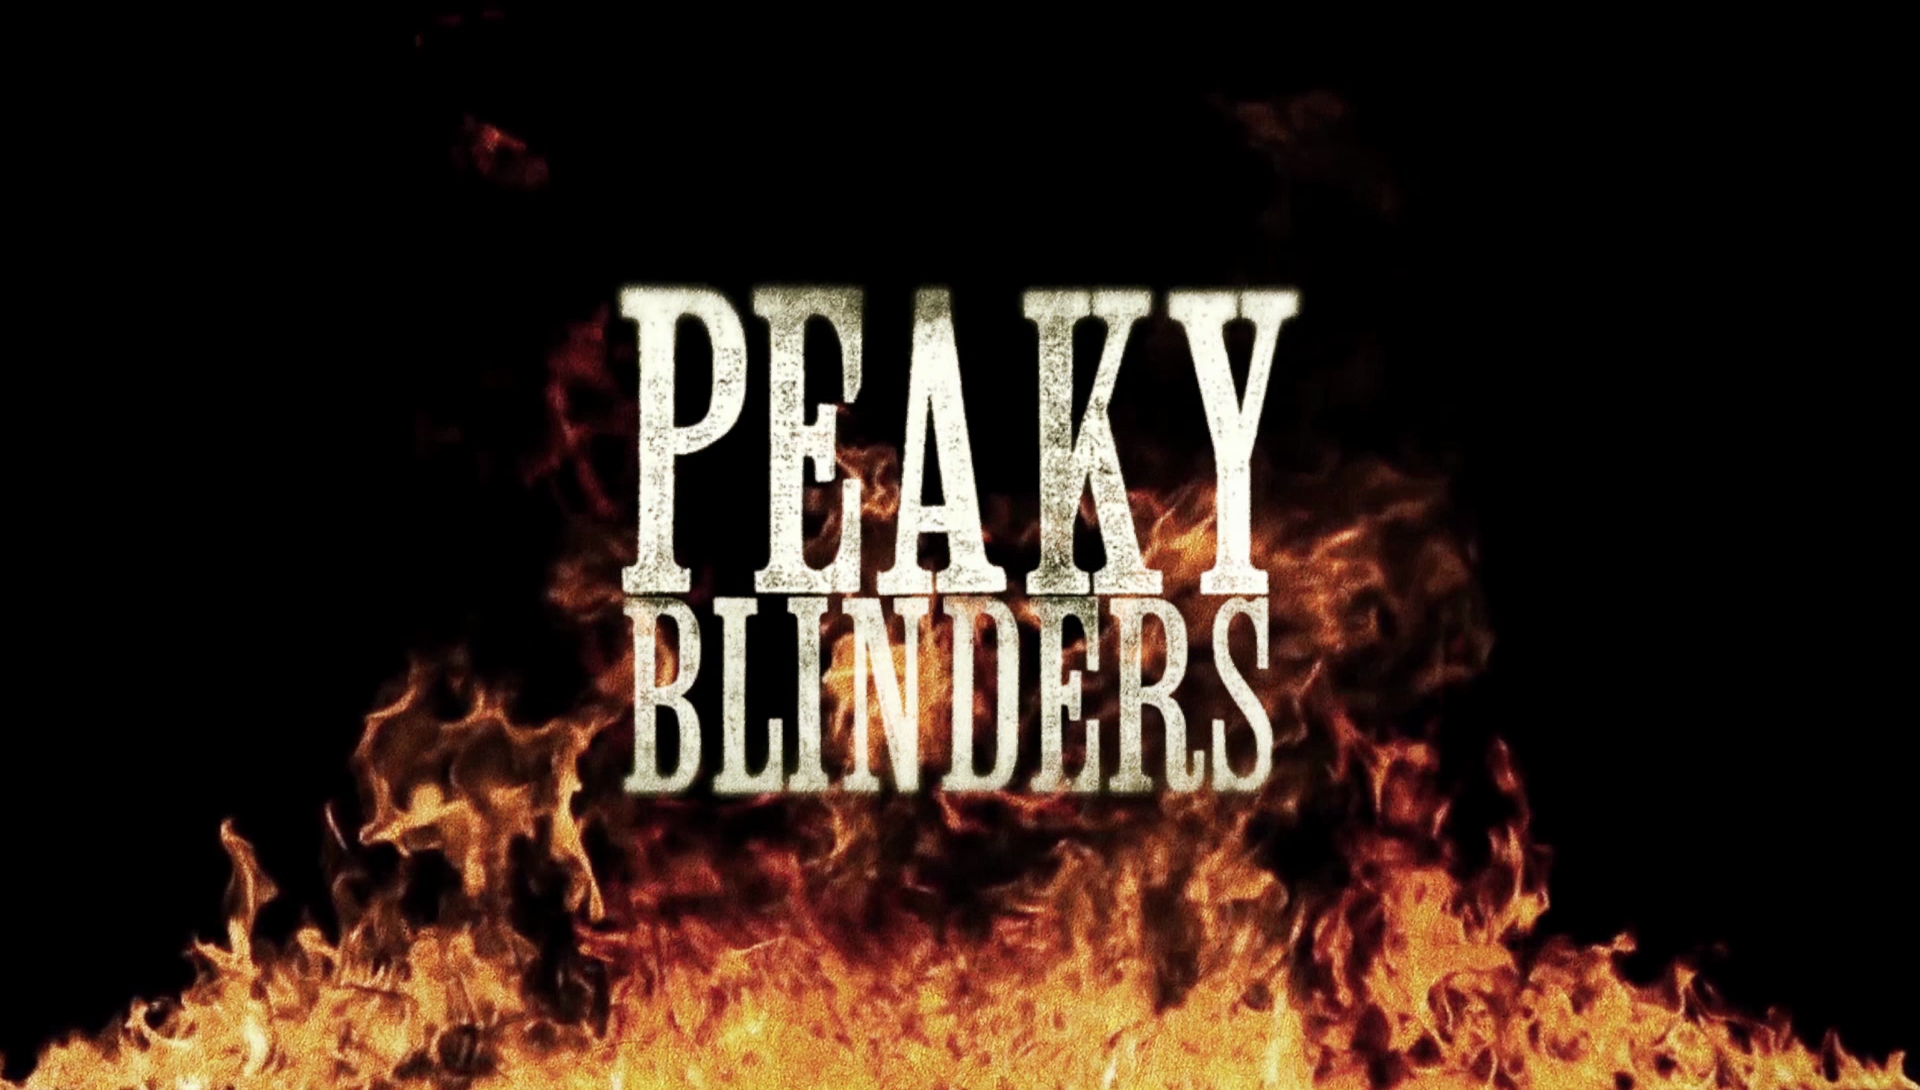 Peaky Blinders Introduction VFX